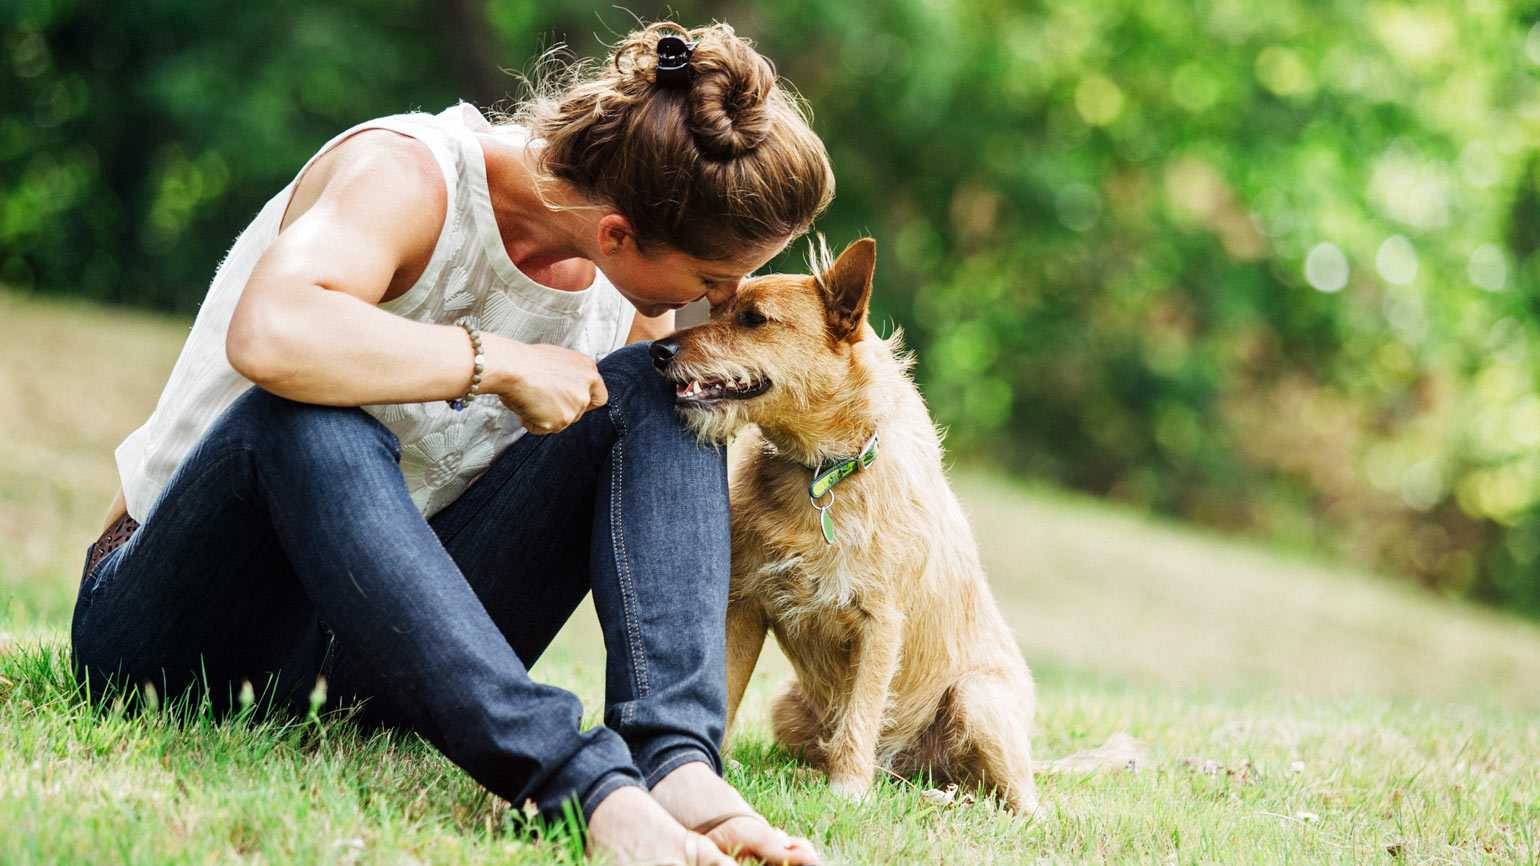 5 Ways to Heal When Grieving the Loss of a Pet